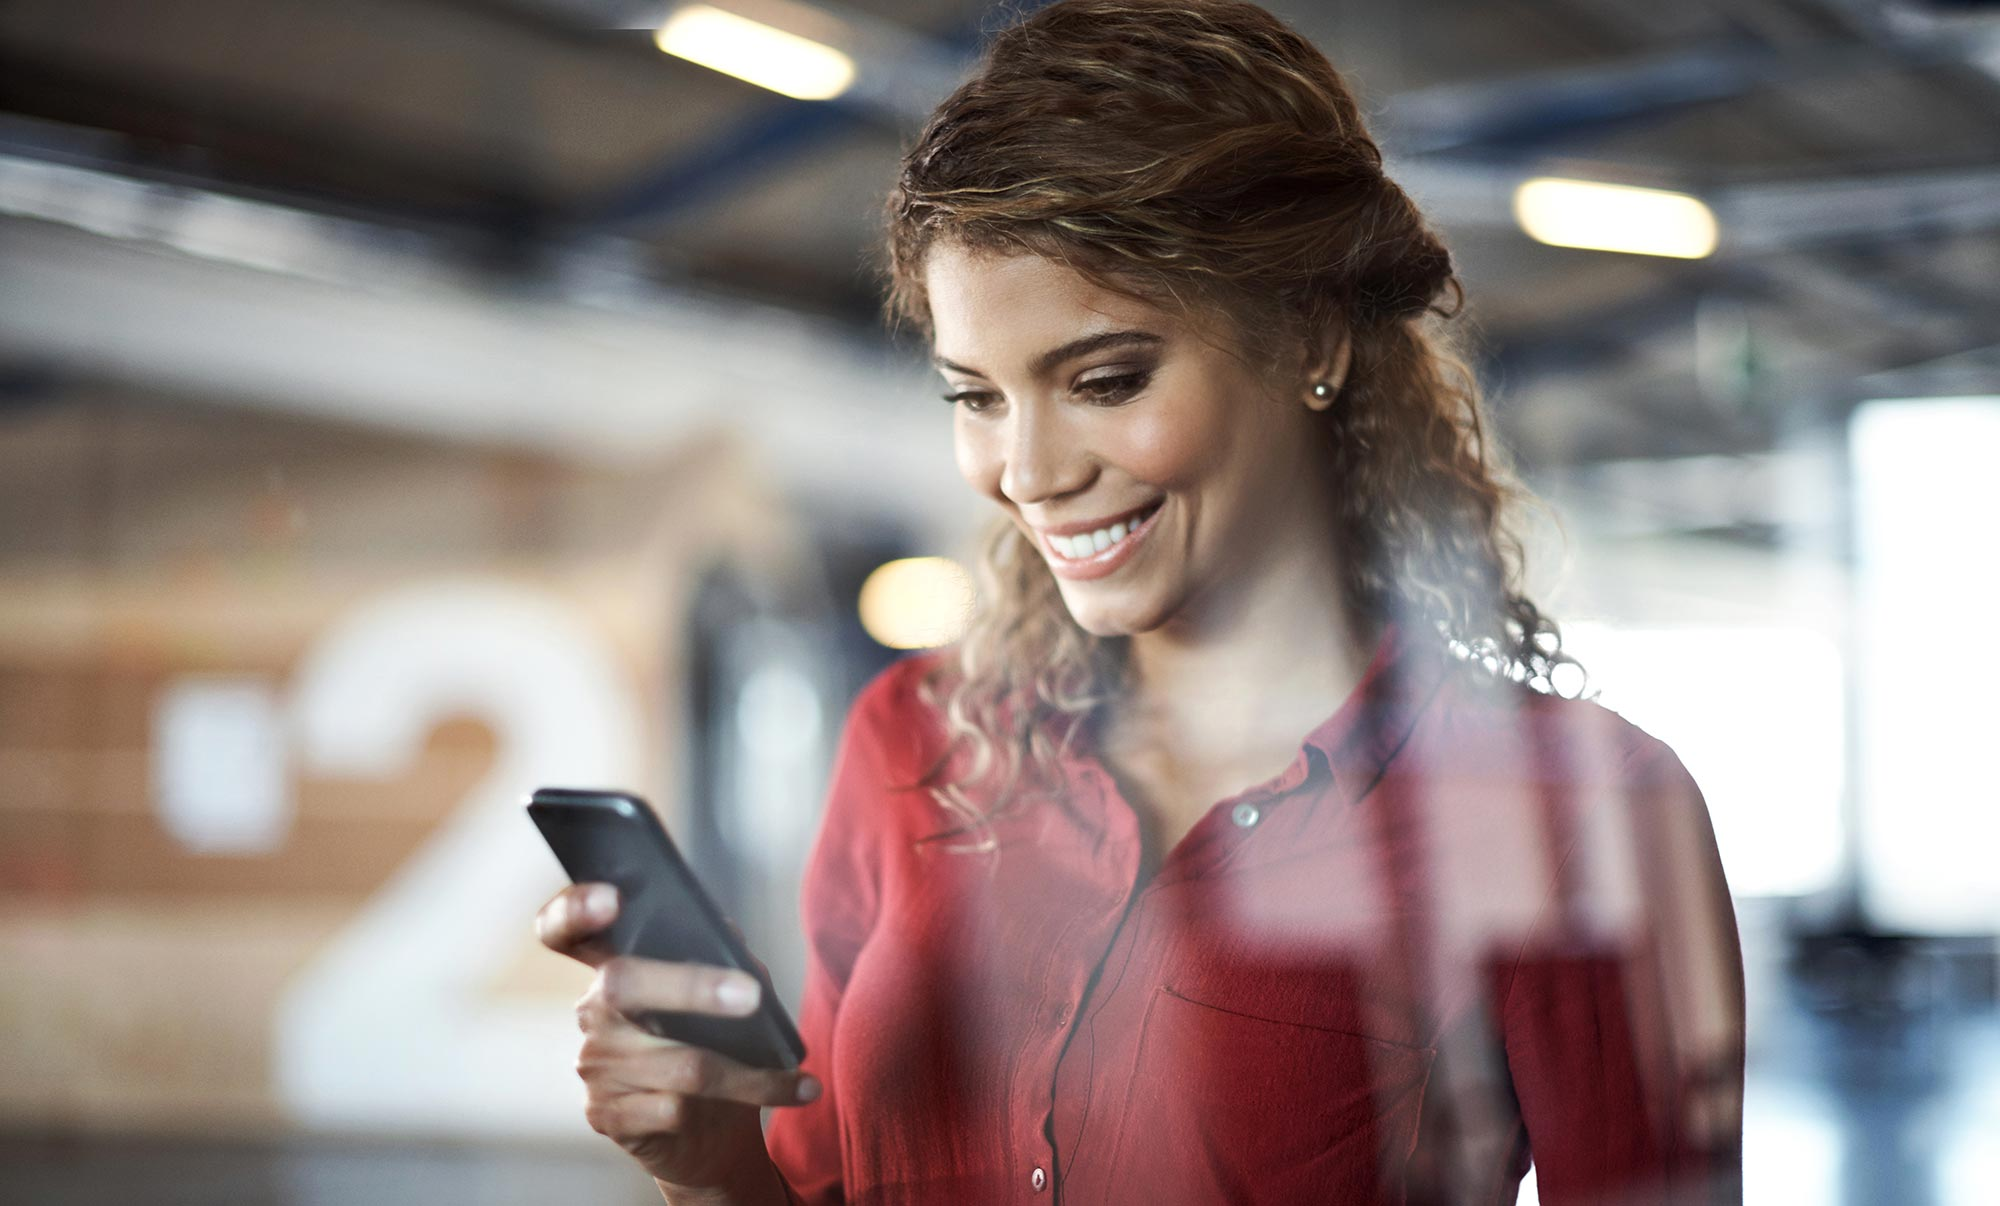 business-woman-smiling-smartphone-reflections.jpg